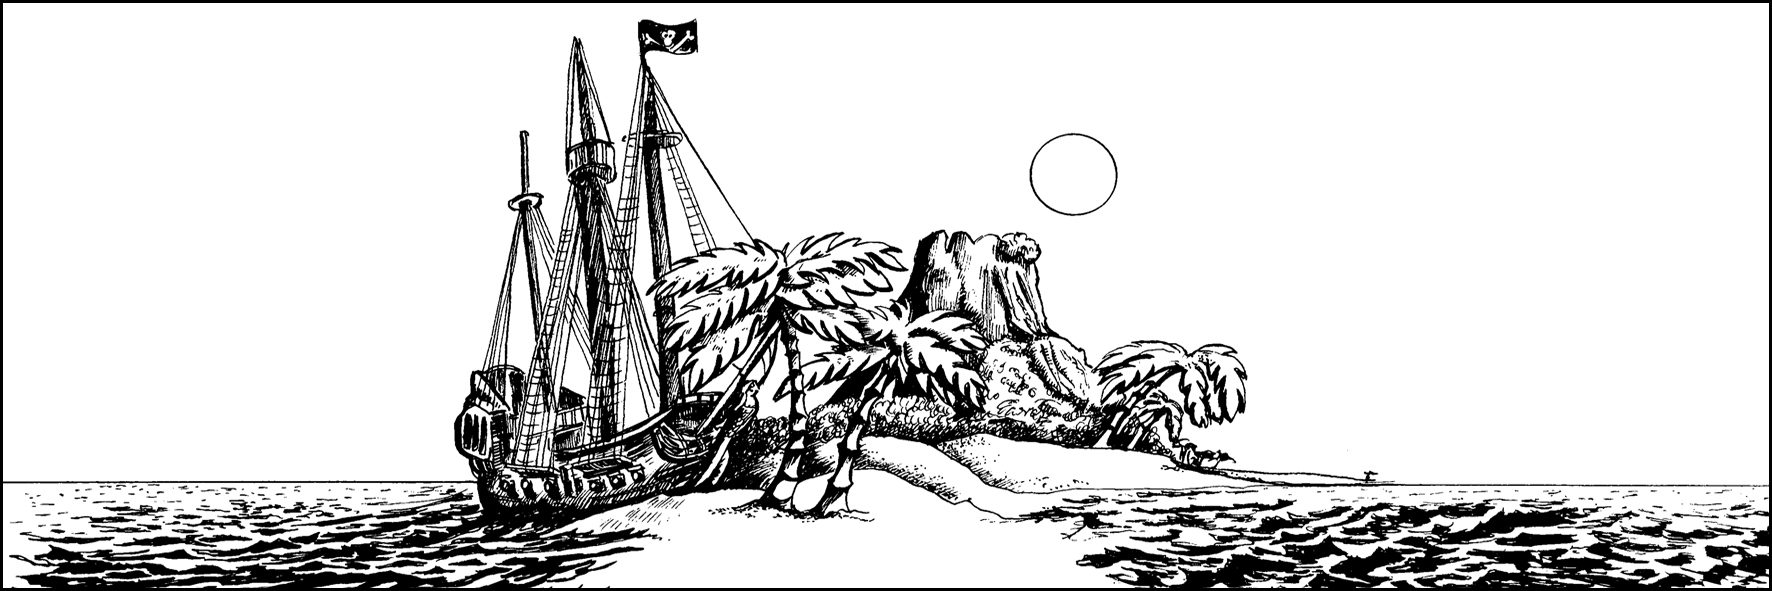 pirate ship picture to colour onegraydot